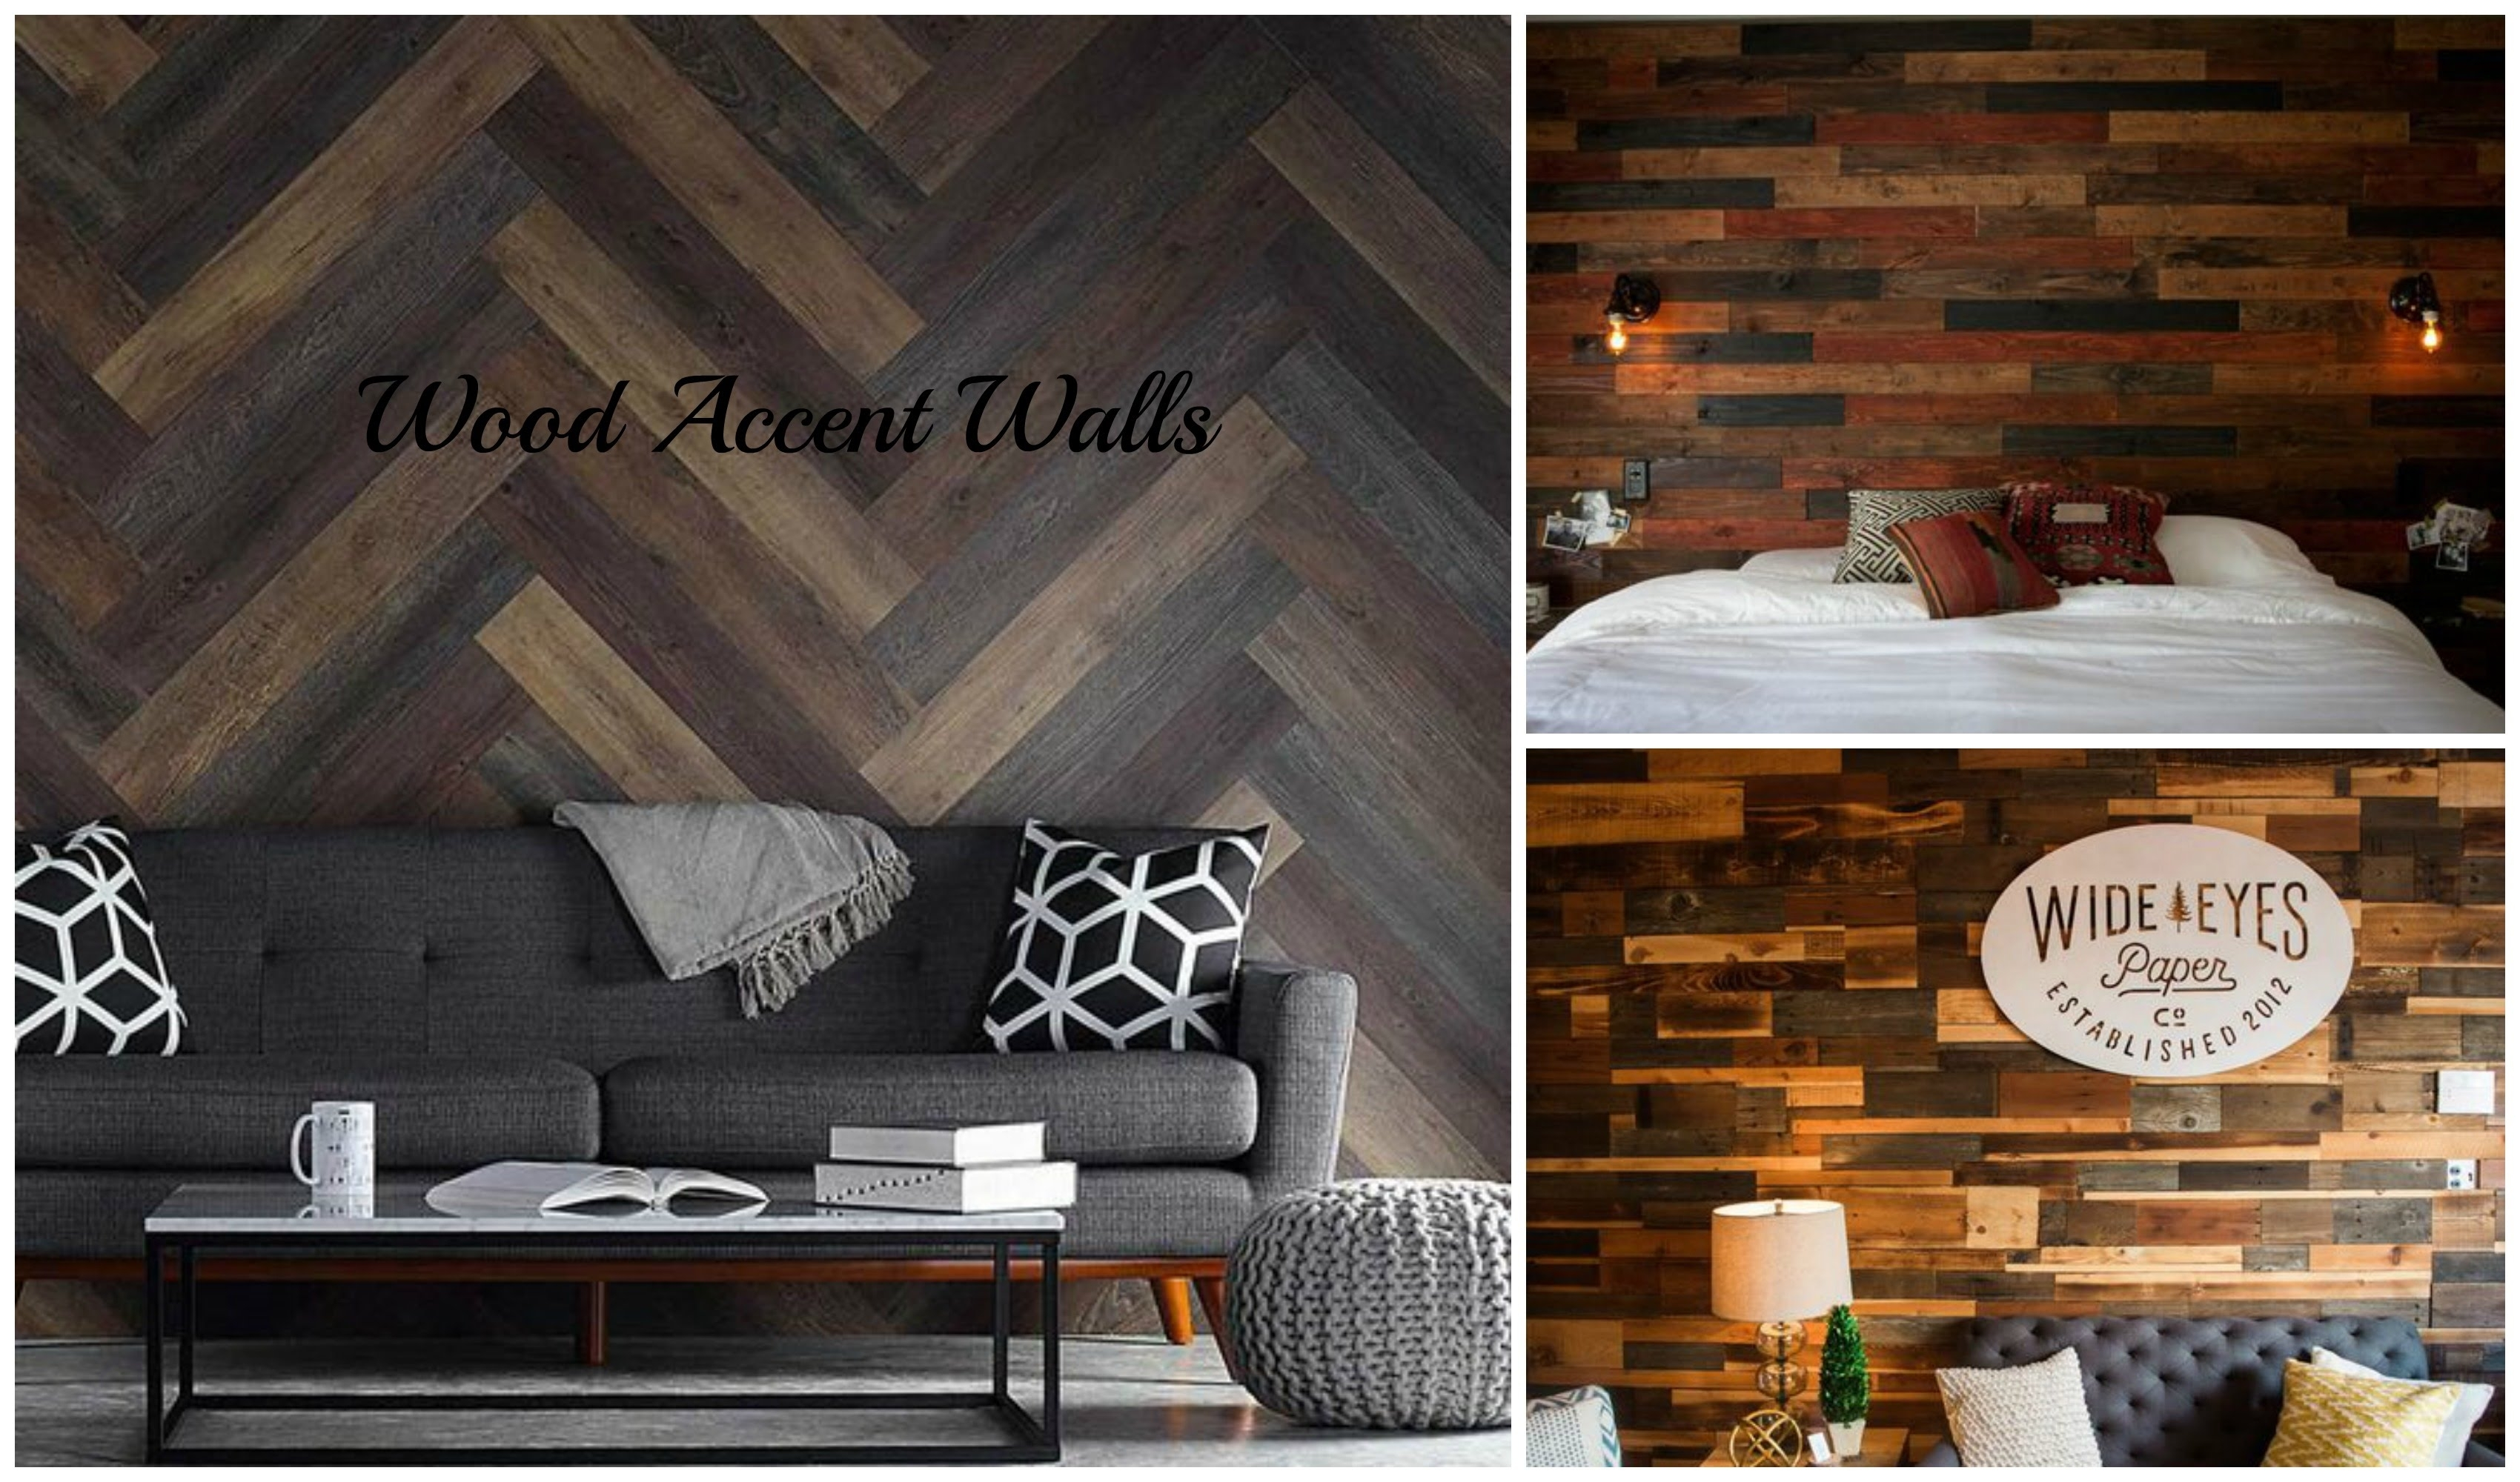 Pallet Accent Wall – Design Decoration Within Most Up To Date Wall Accents With Pallets (Gallery 4 of 15)